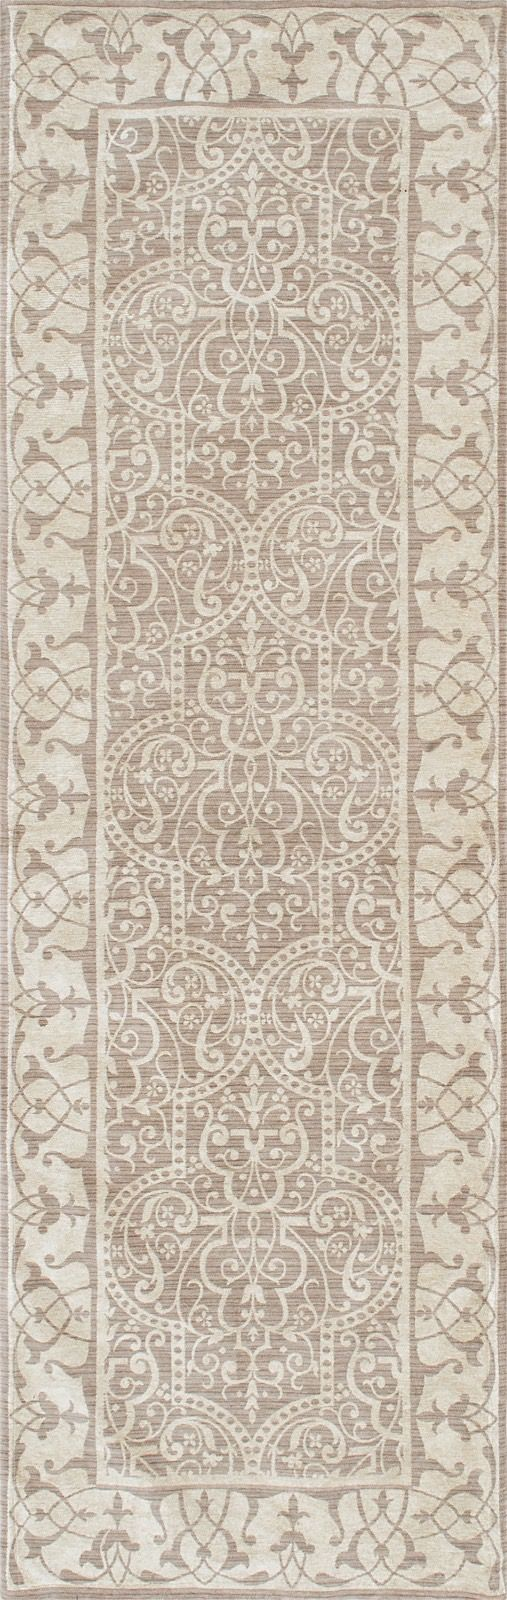 nuloom woodall transitional area rug collection